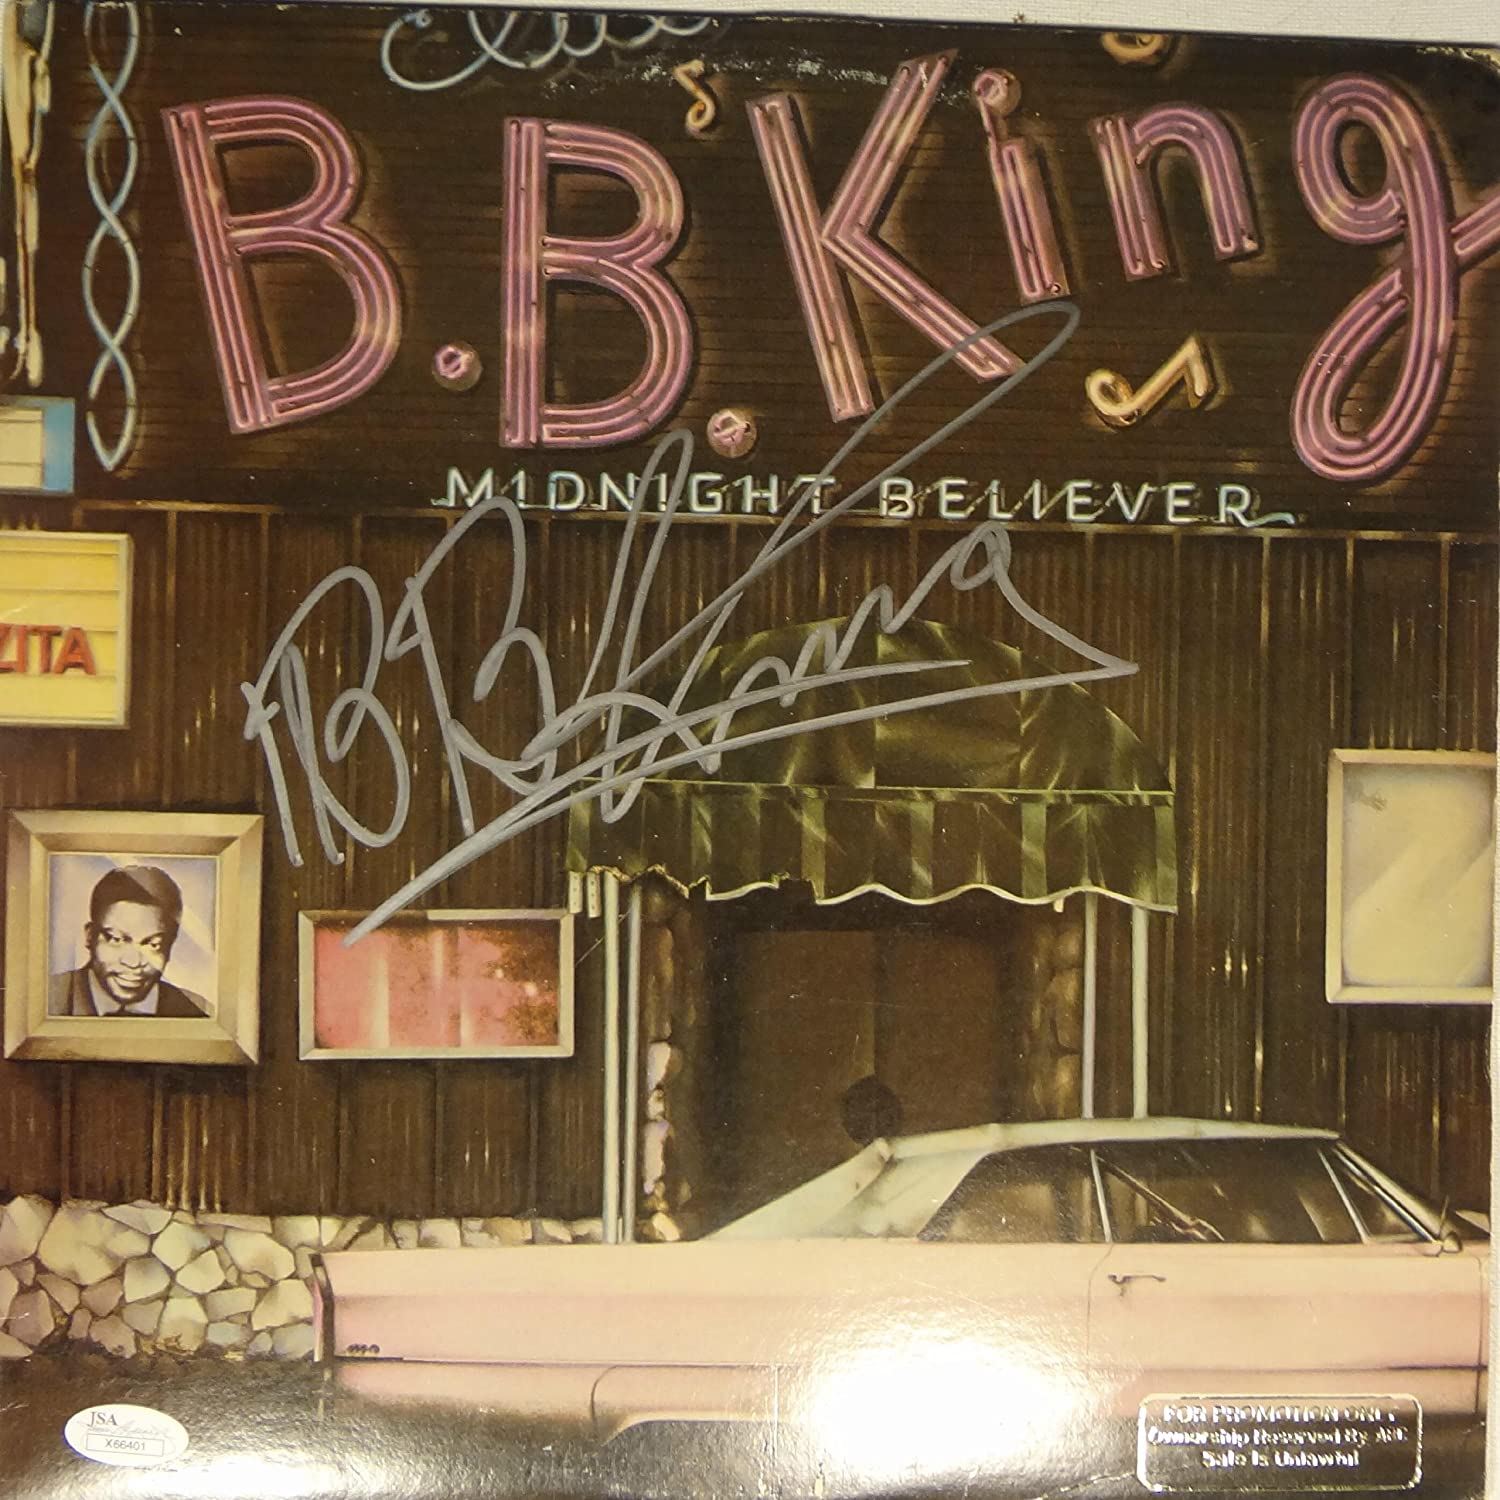 цены Signed B.B. King Autographed 1978 Midnight Believer Lp Album Jsa Loa # X66401